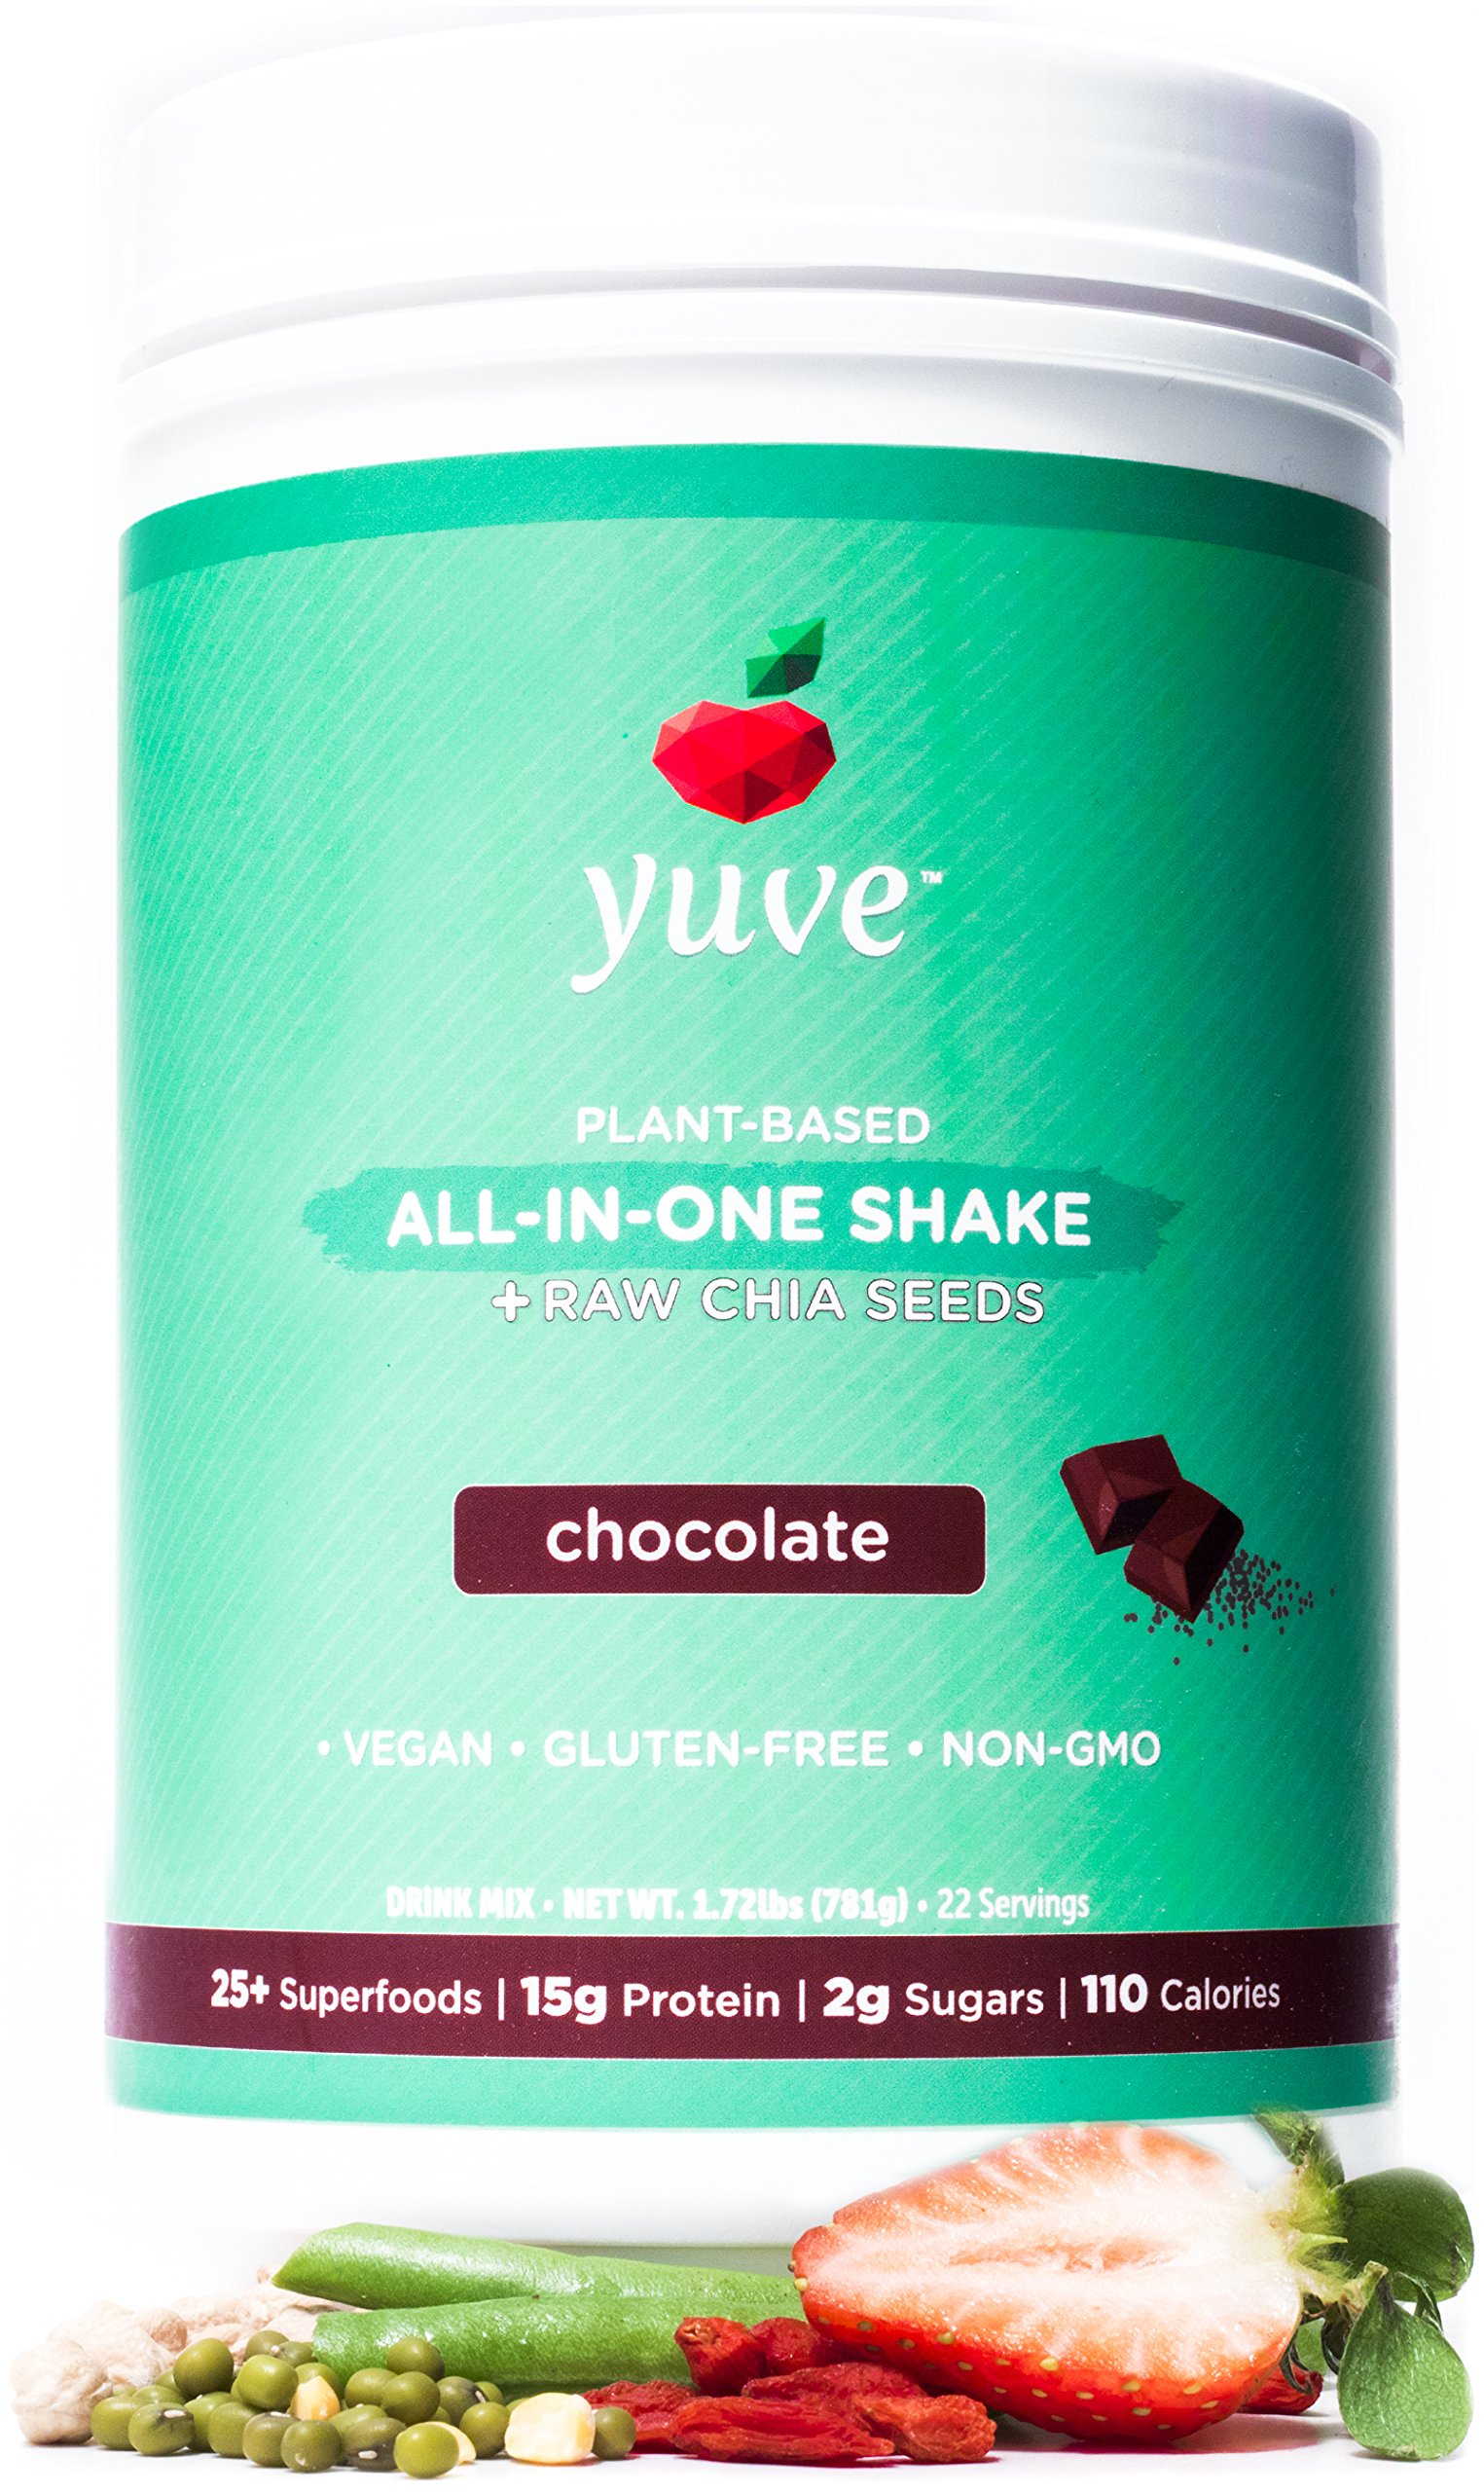 Yuve Vegan Protein Powder with Superfoods - Award Winning Taste - Complete Nutritional Shake - Natural Greens, Plant Based, Non-GMO, Gluten, Dairy, Soy and Lactose Free - Large Tub (Chocolate) by Yuve